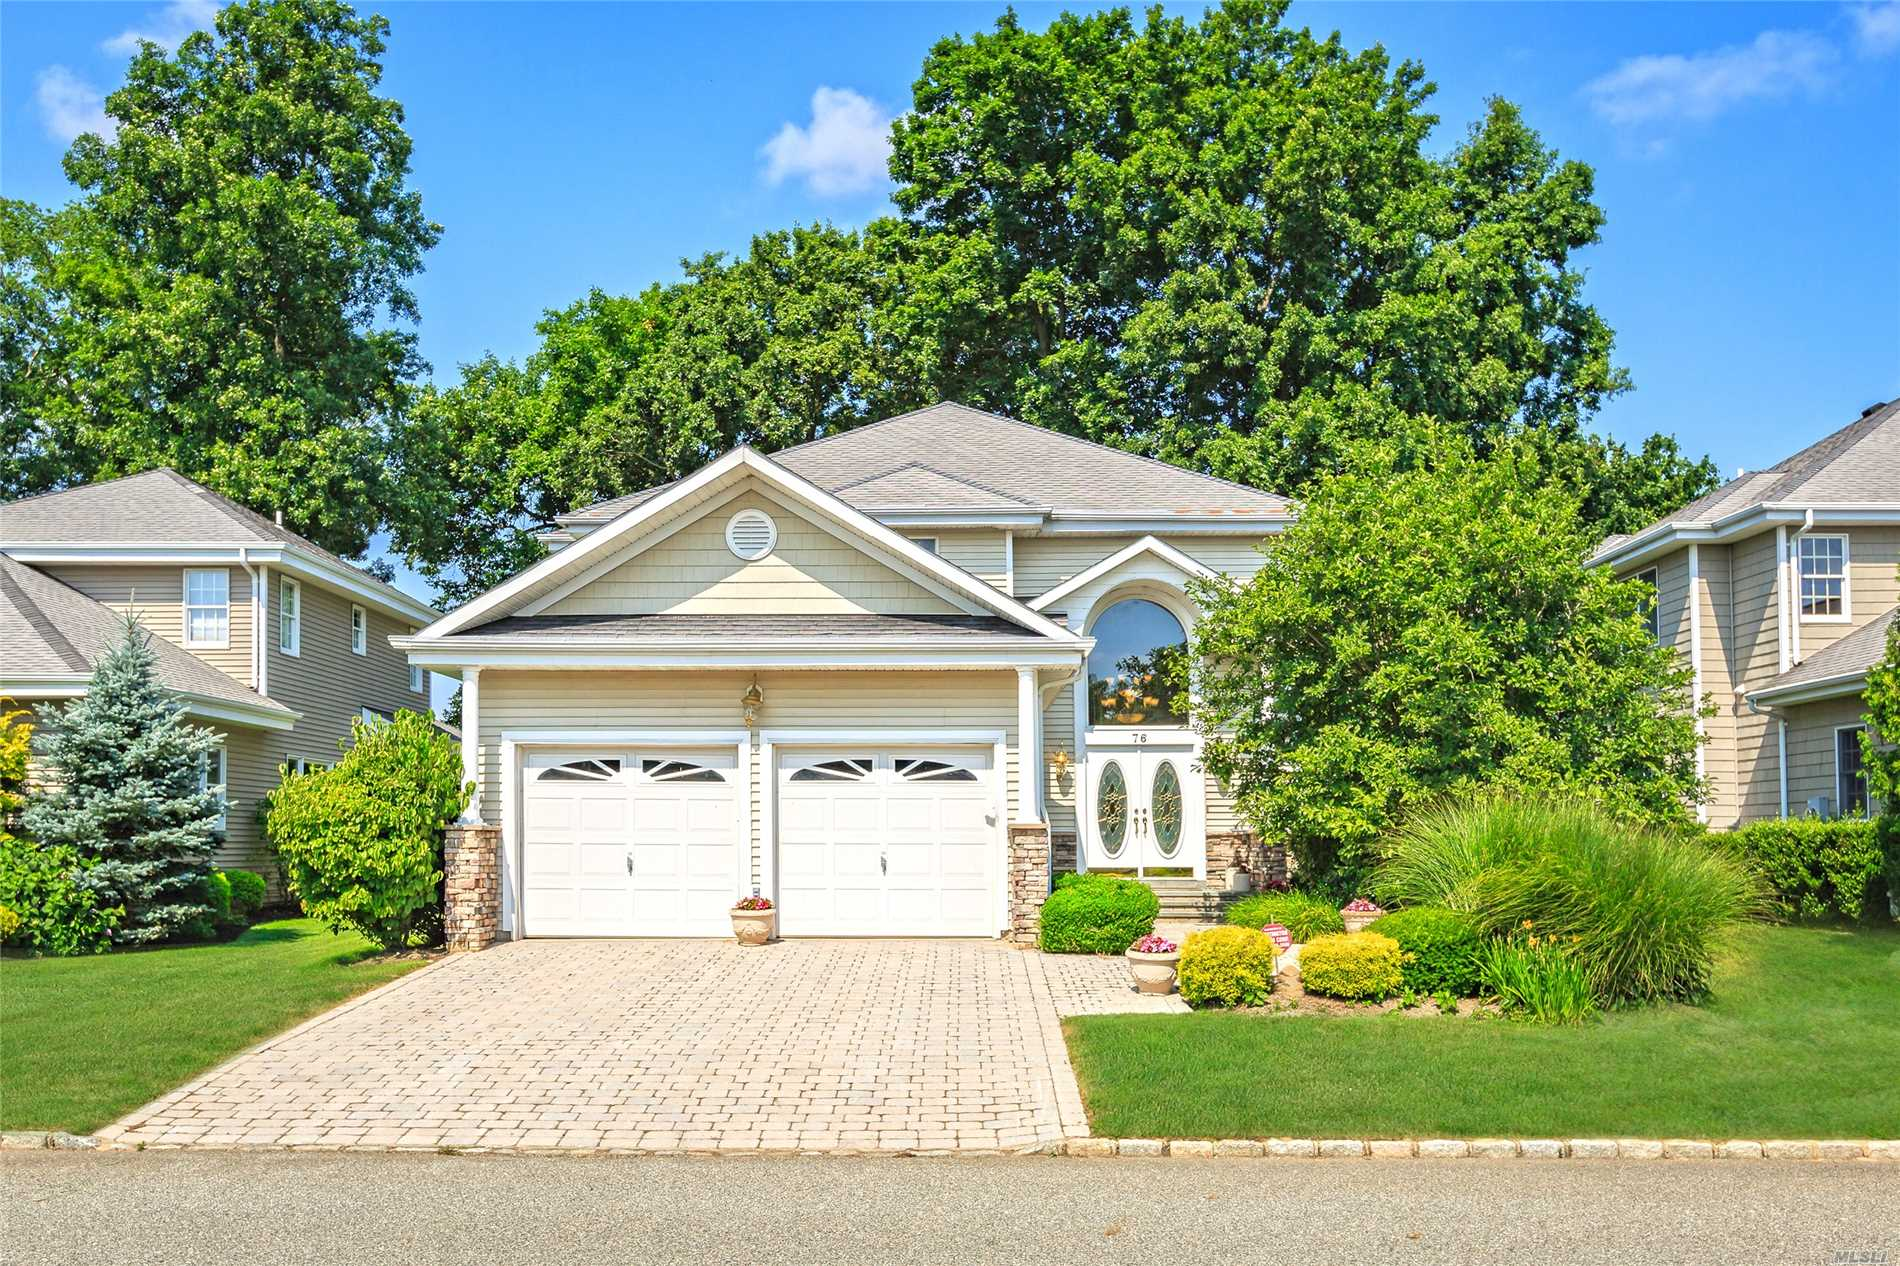 Property for sale at 76 Redan Dr, Smithtown,  NY 11787